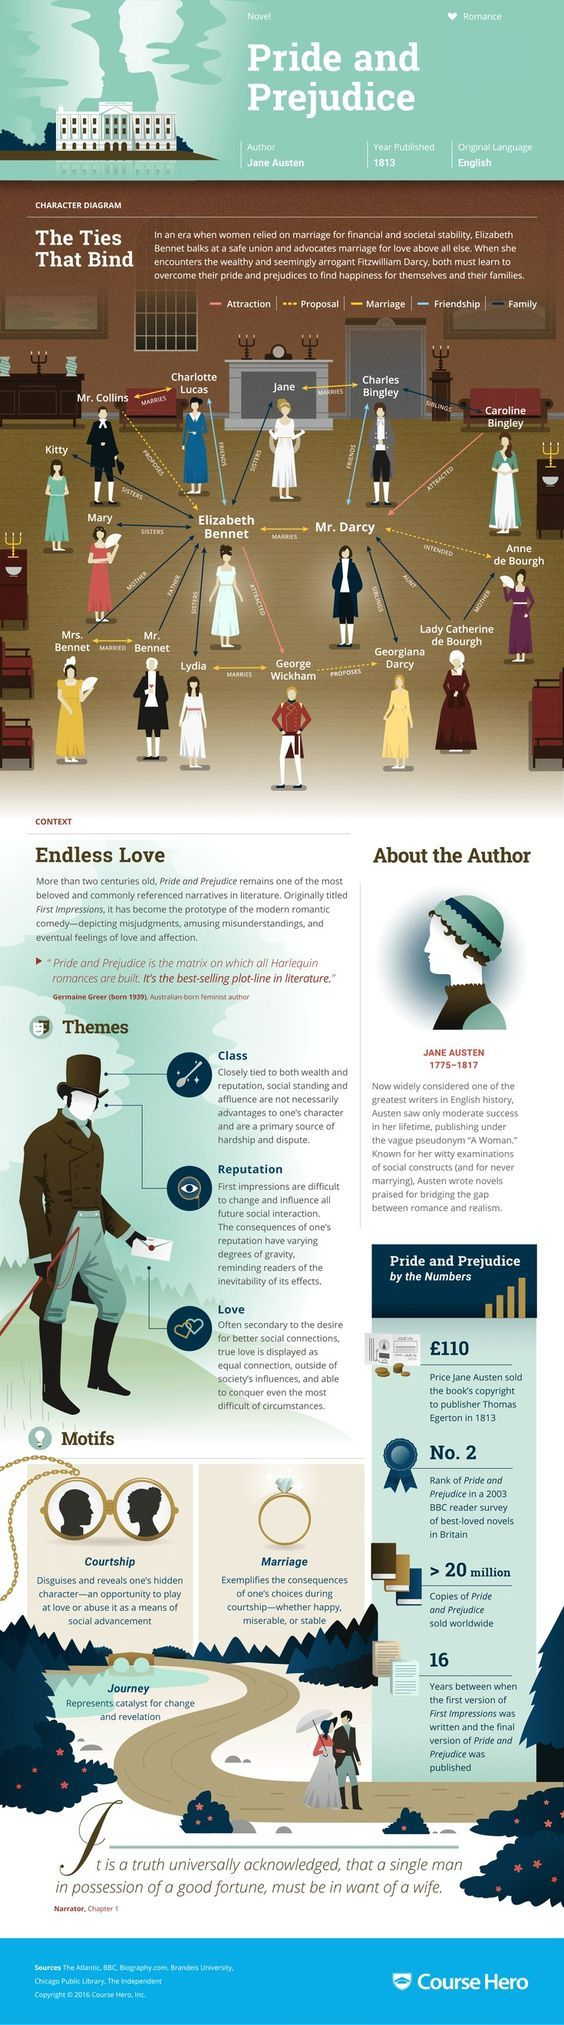 pride and prejudice character analysis darcy